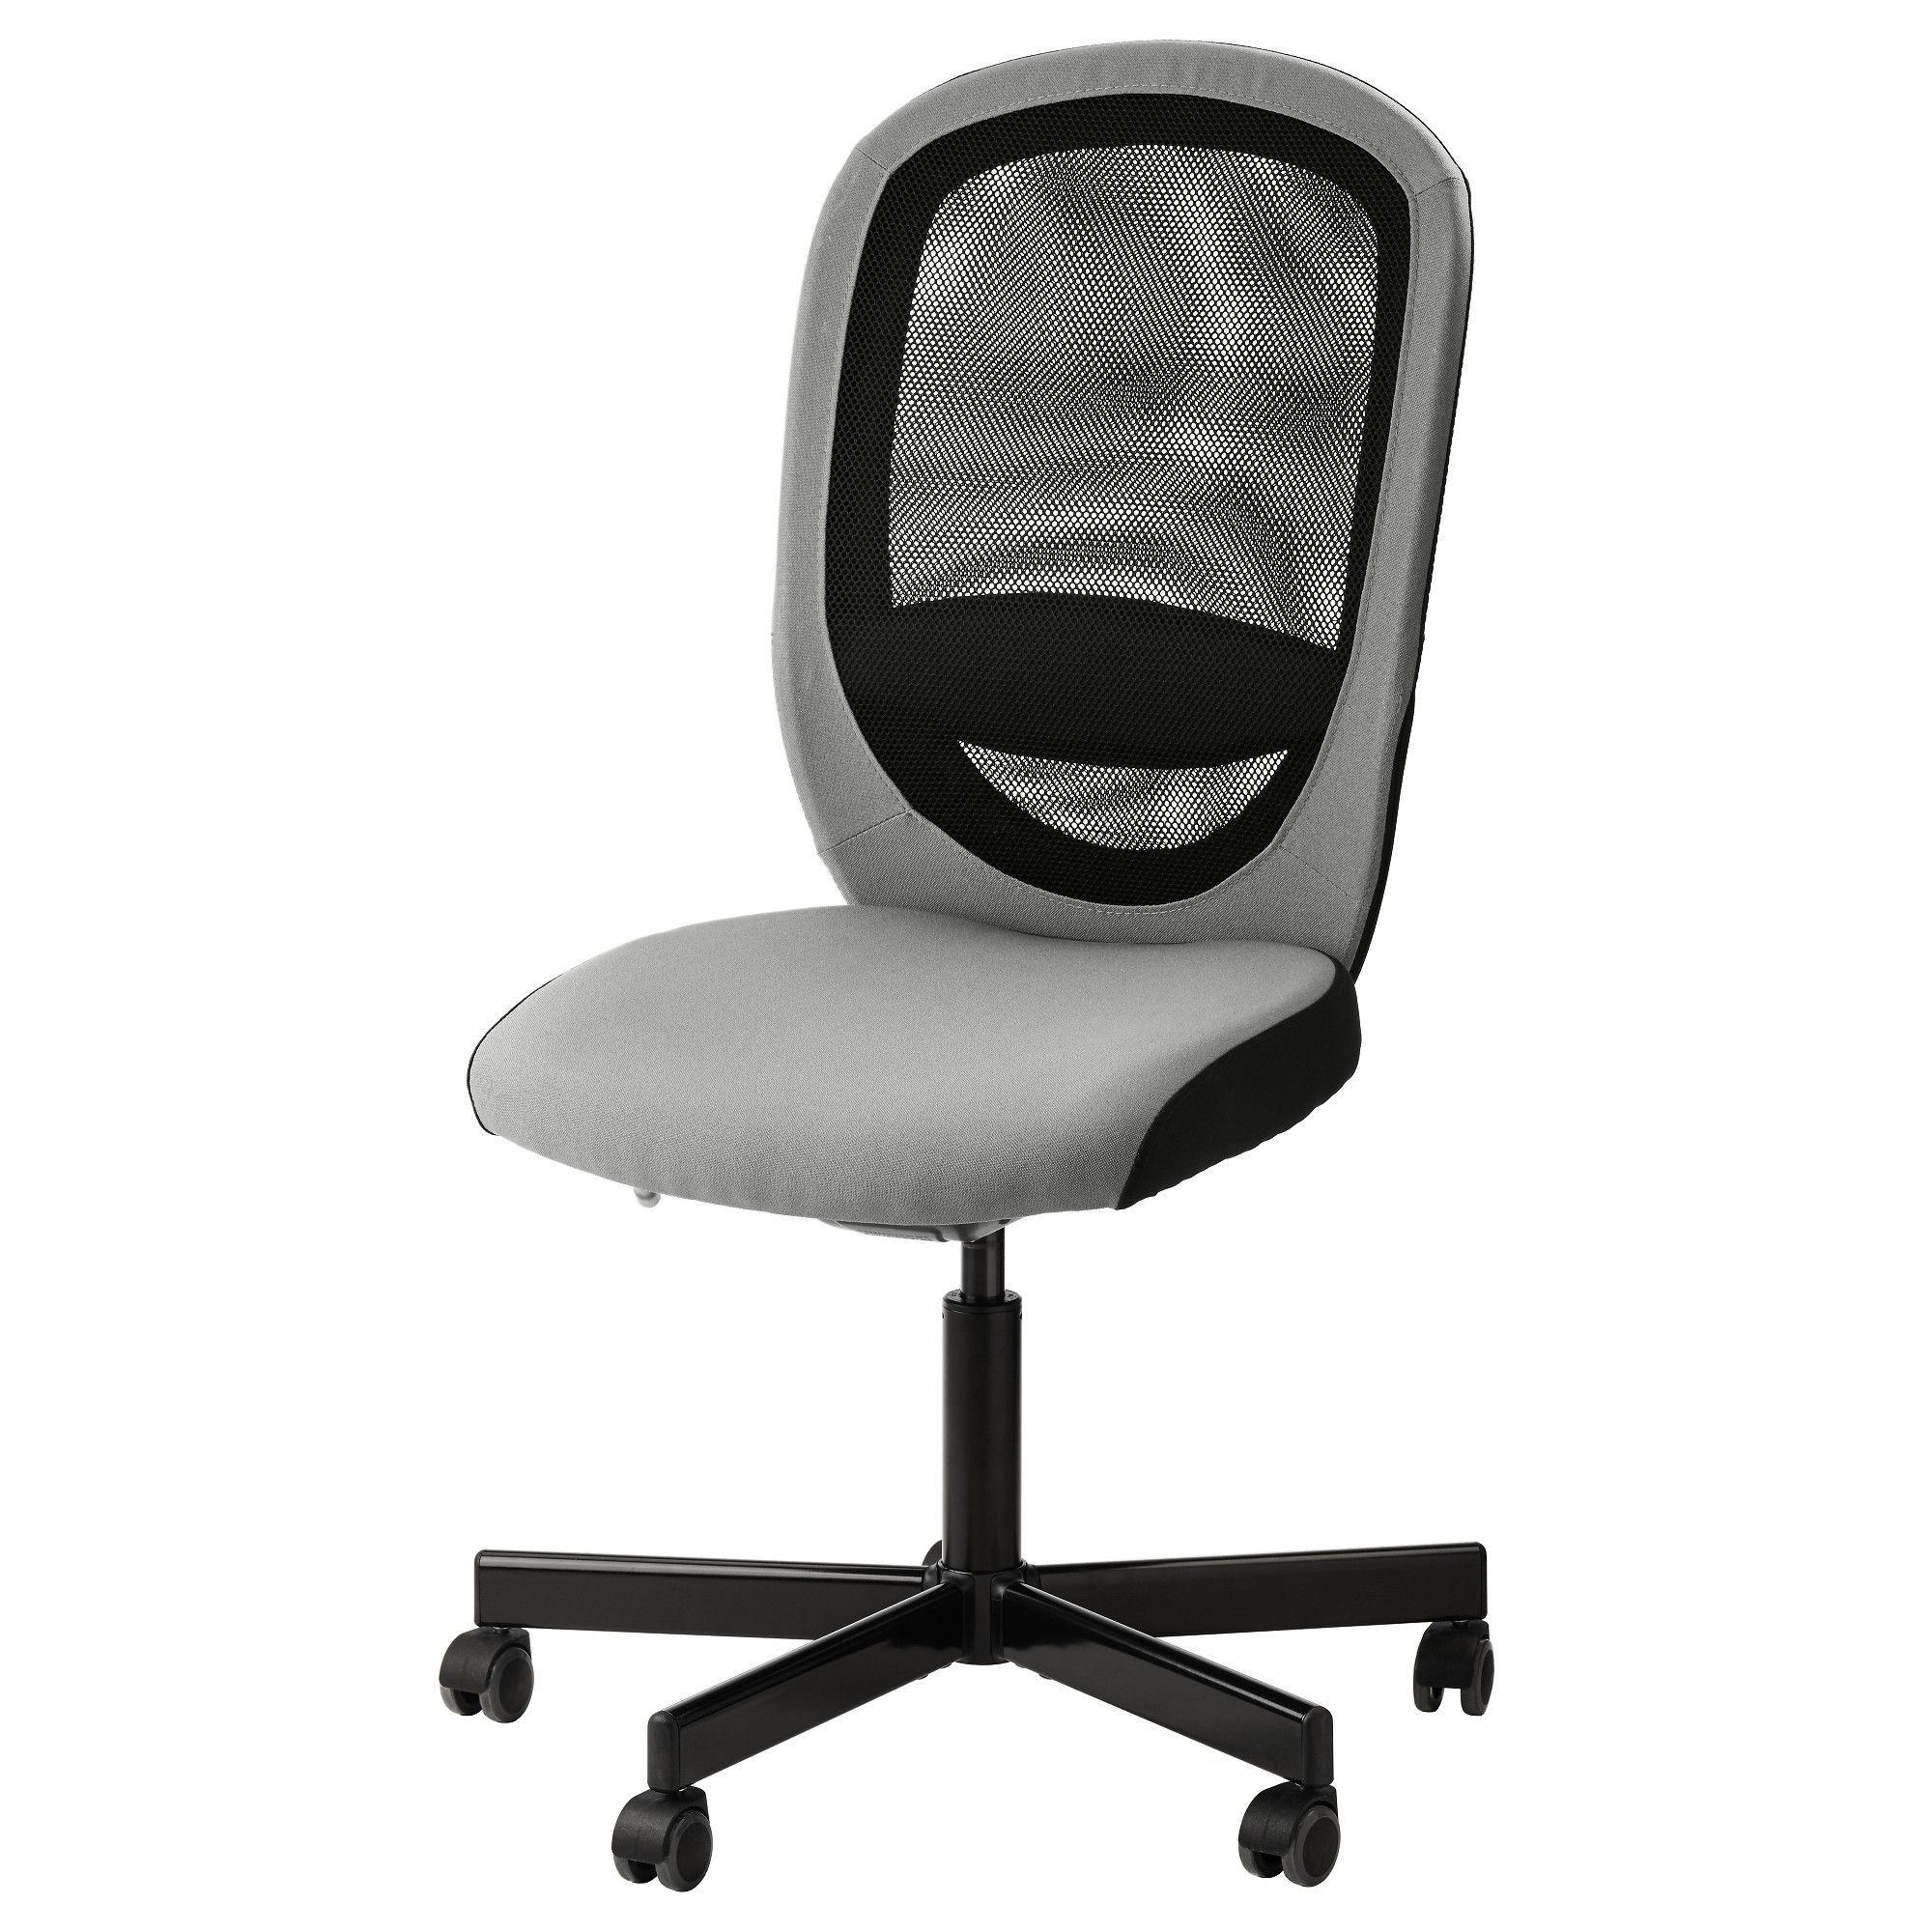 ikea flintan swivel chair you sit comfortably since the chair is